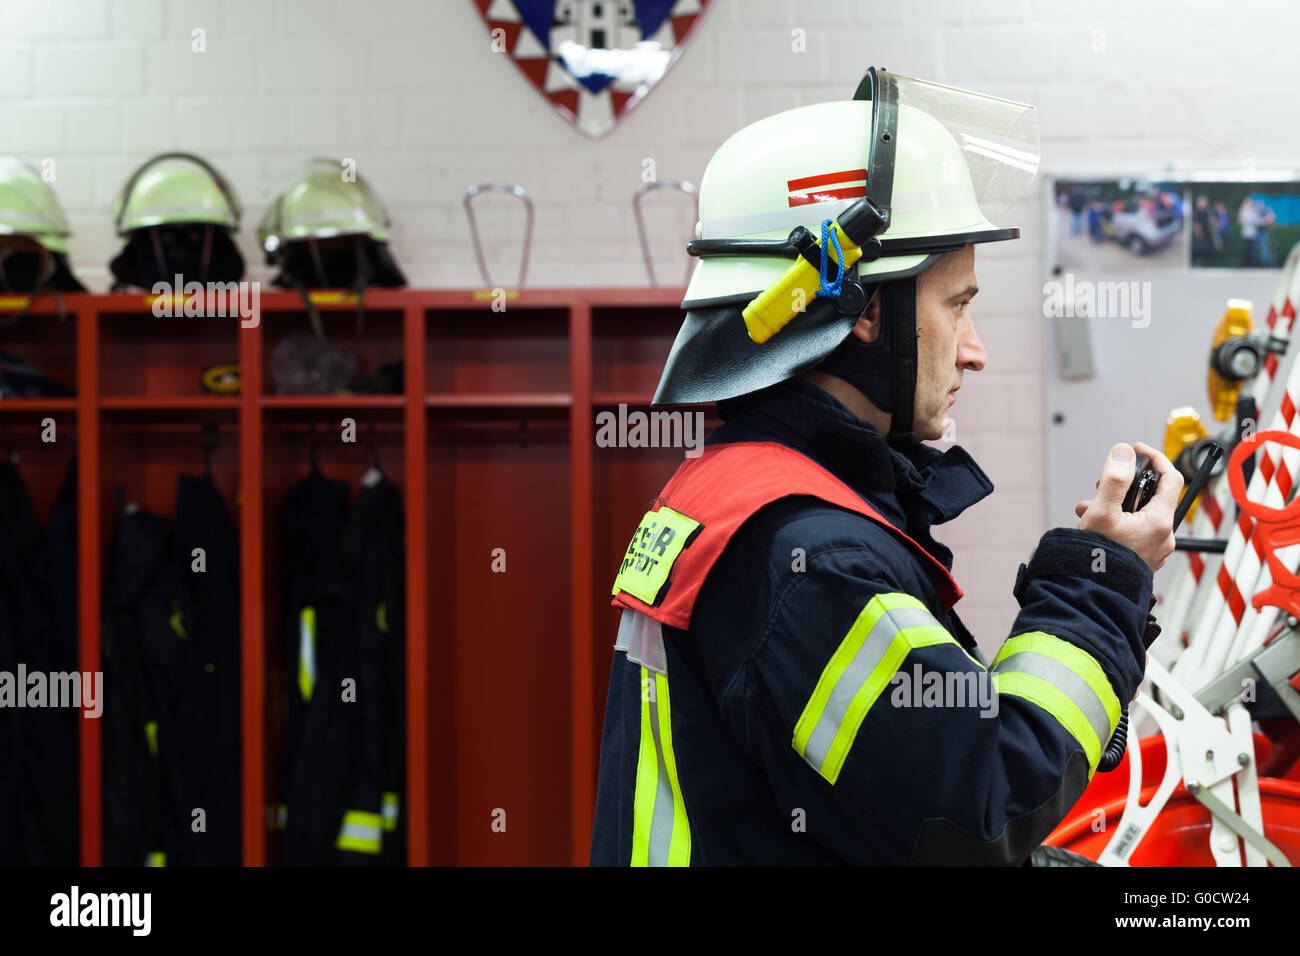 Firefighter in the fire department with radio. - Stock Image